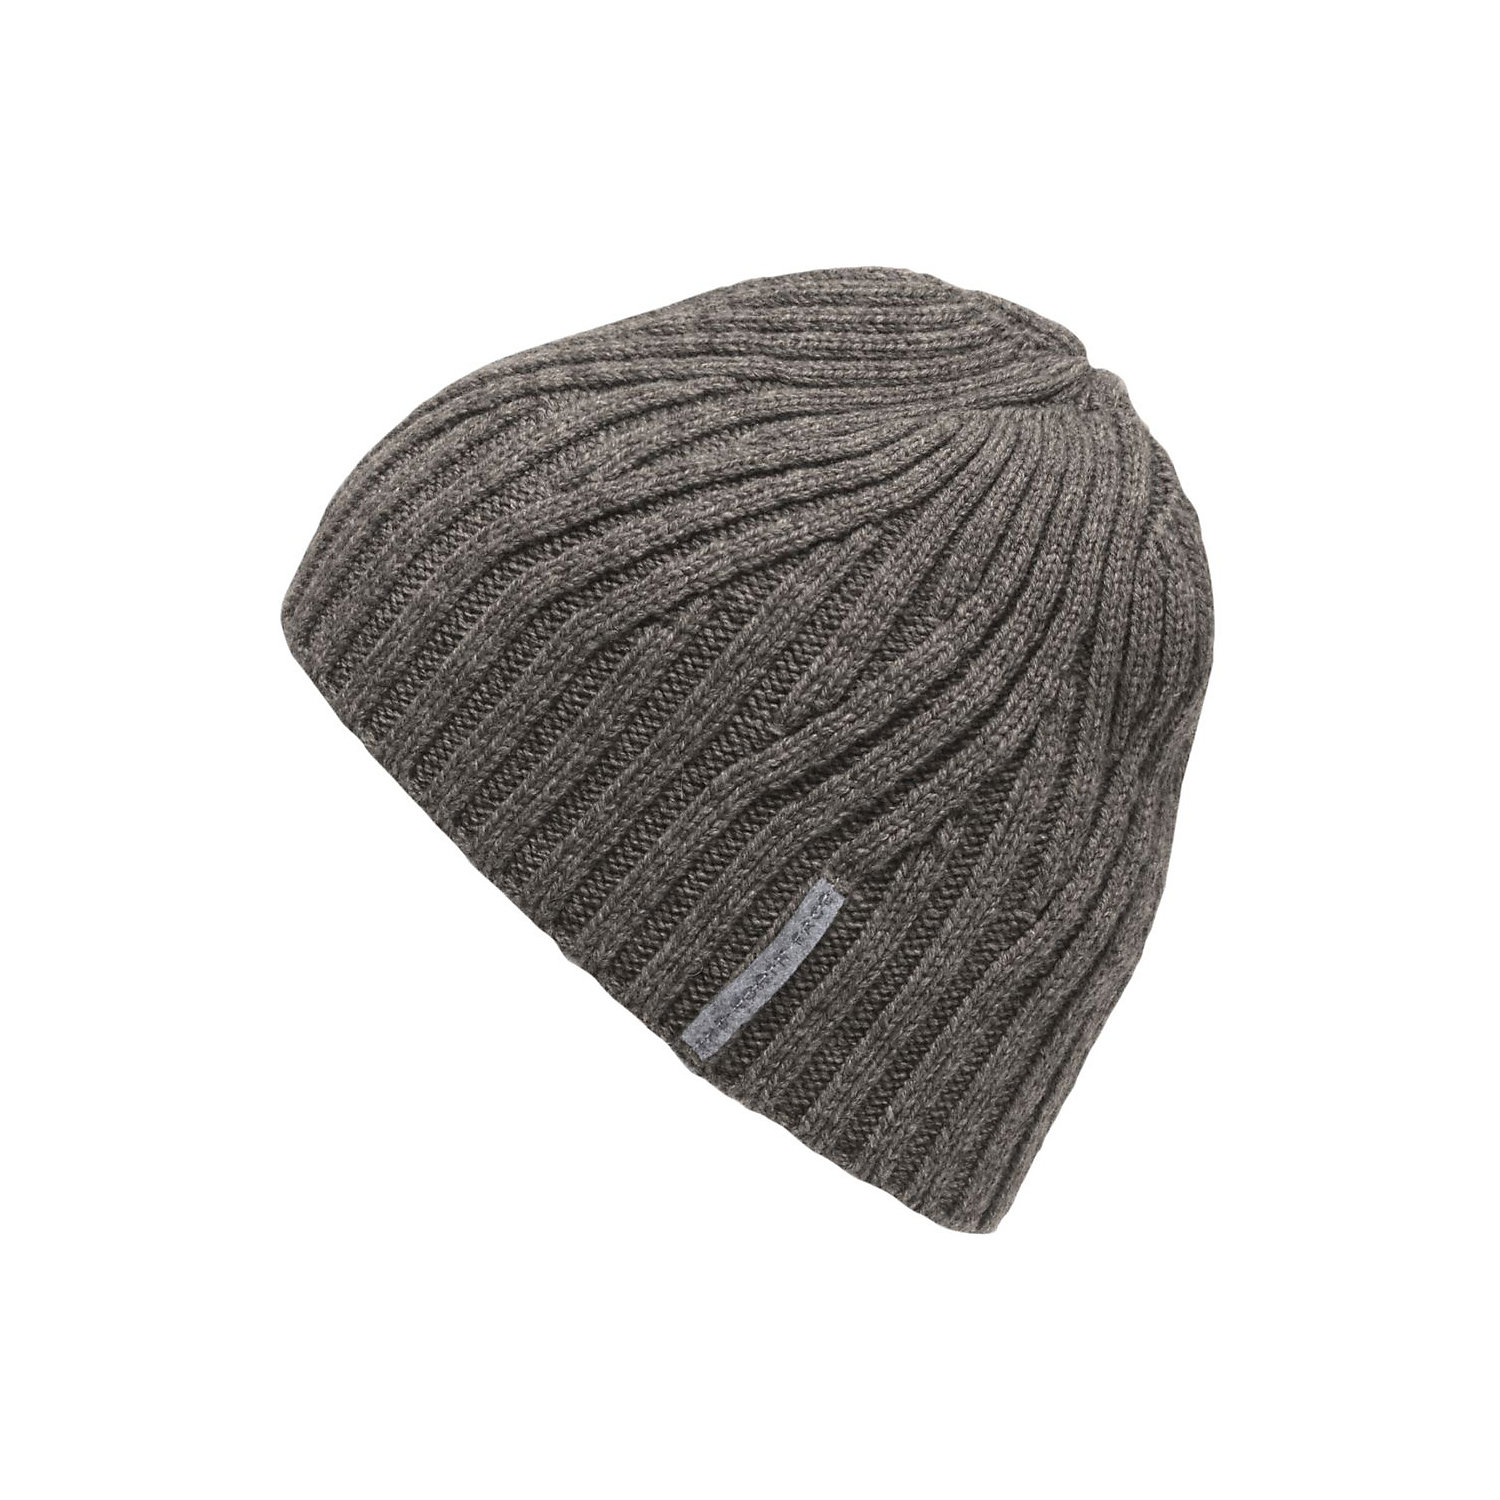 9ce61b005a5 The North Face Men s Classic Wool Beanie. Double tap to zoom. TNF Medium  Grey Heather